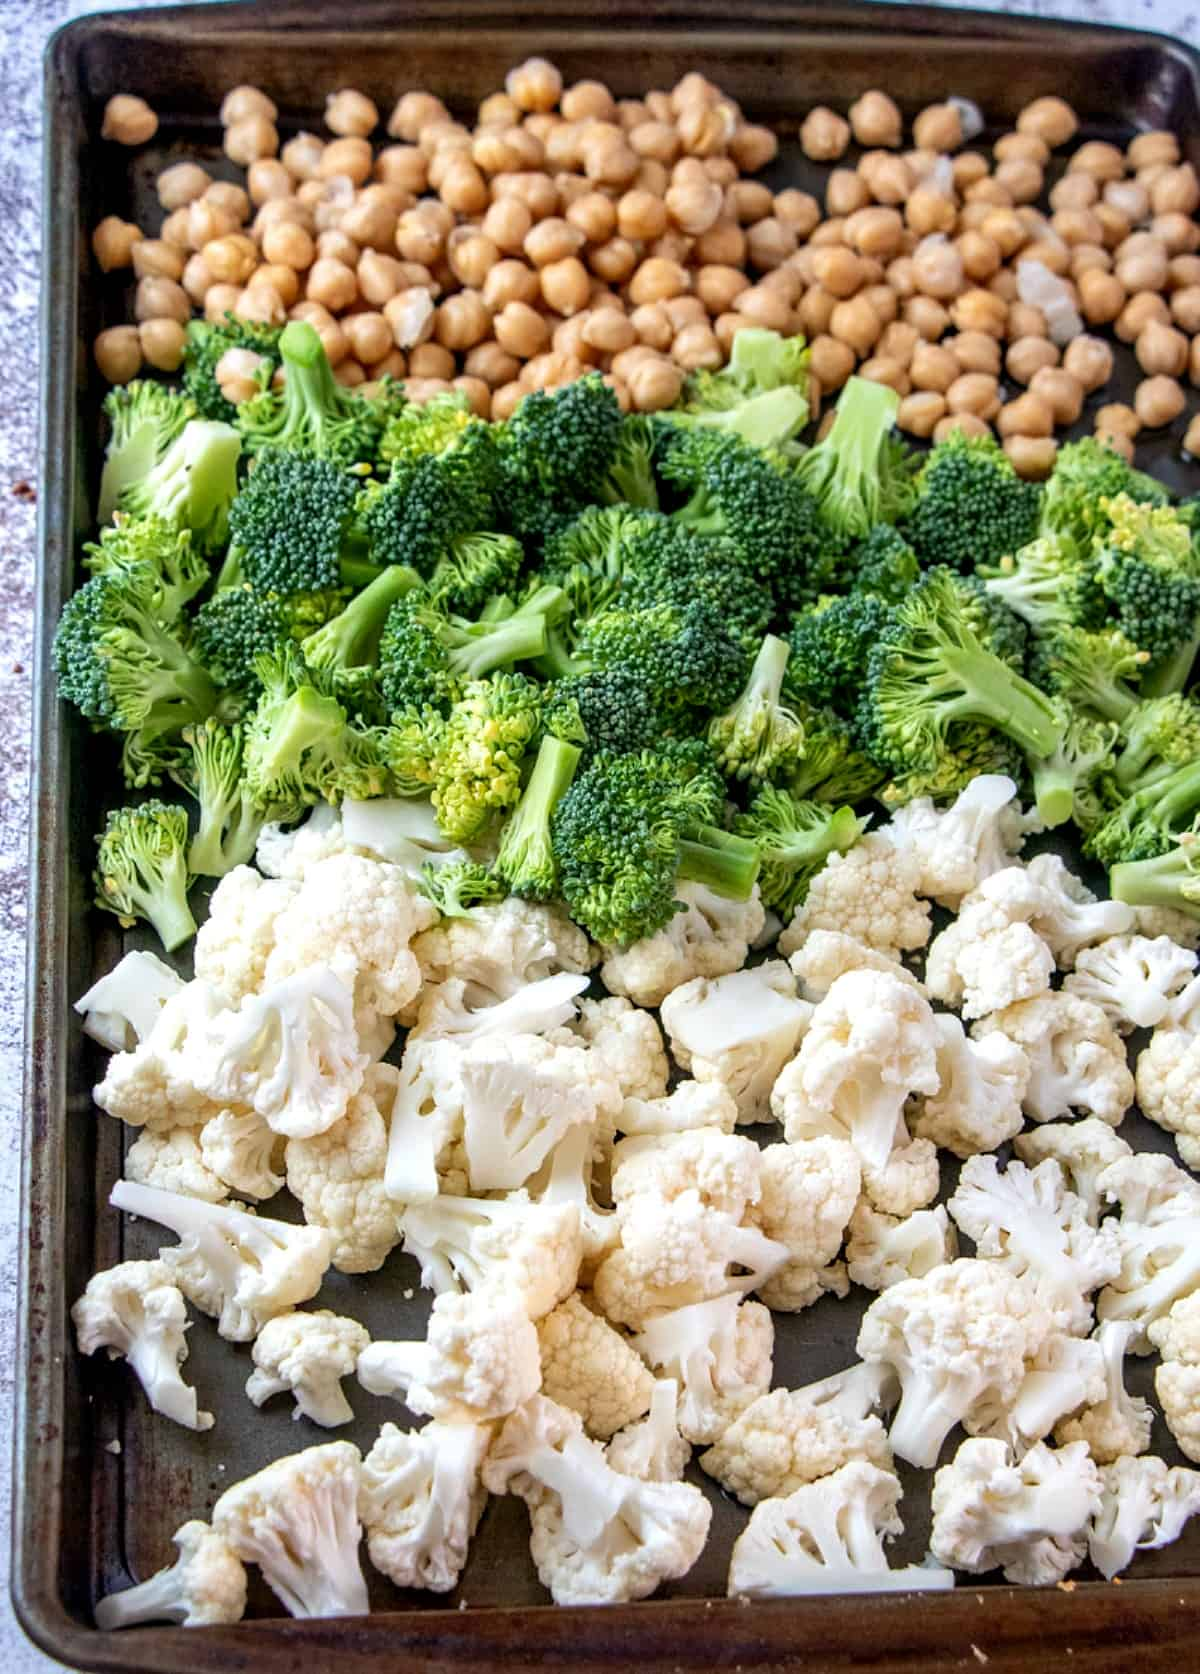 Cauliflower, broccoli and chickpeas are lined up on a baking sheet and ready to be roasted.